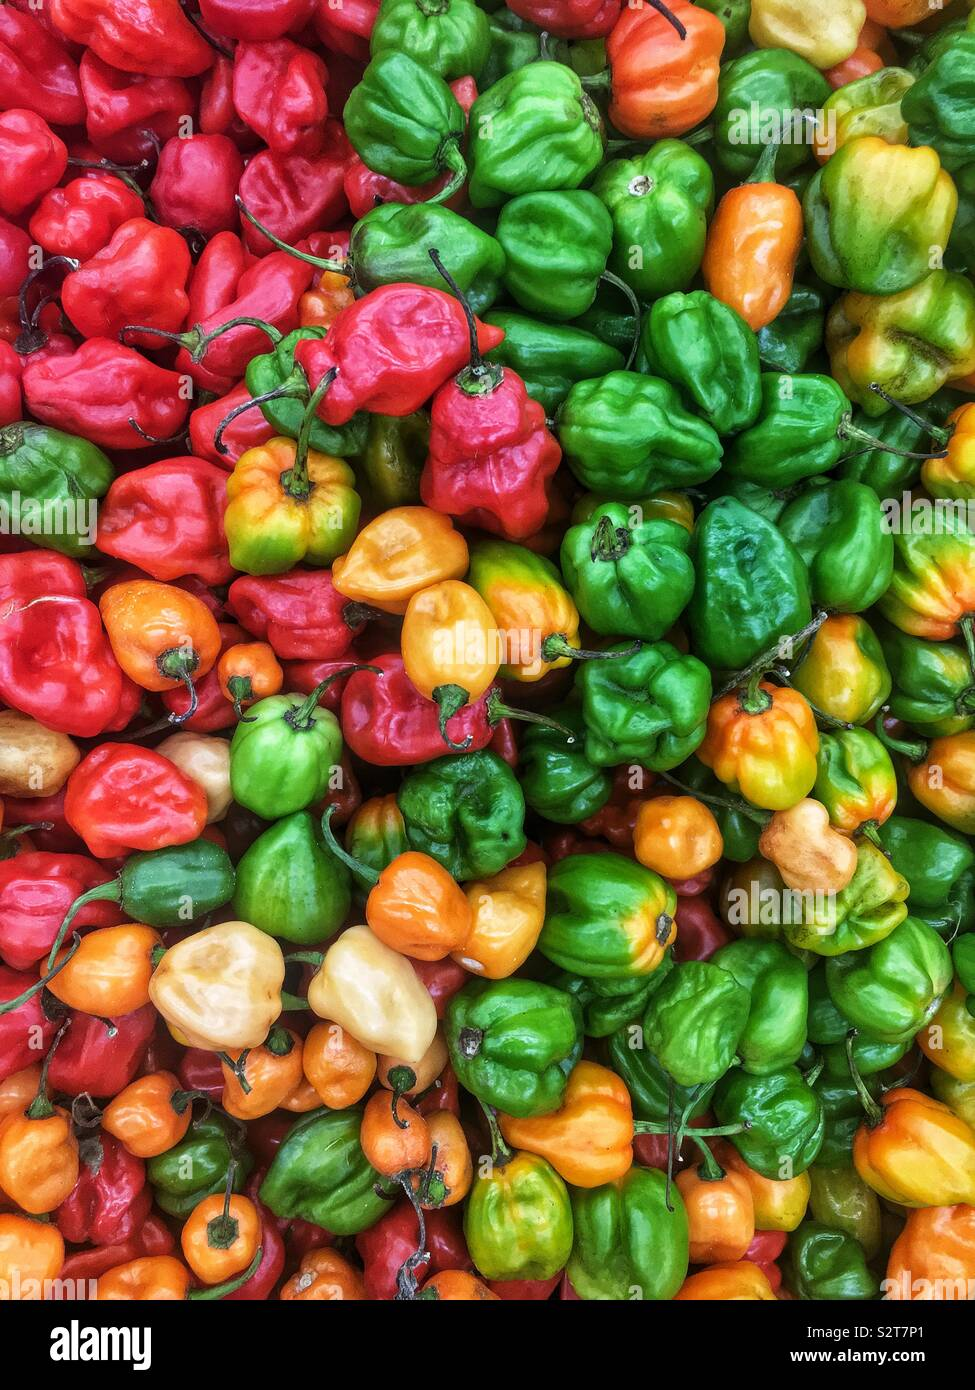 Variety of farm fresh spicy red, orange, yellow, and green habanero peppers. Stock Photo